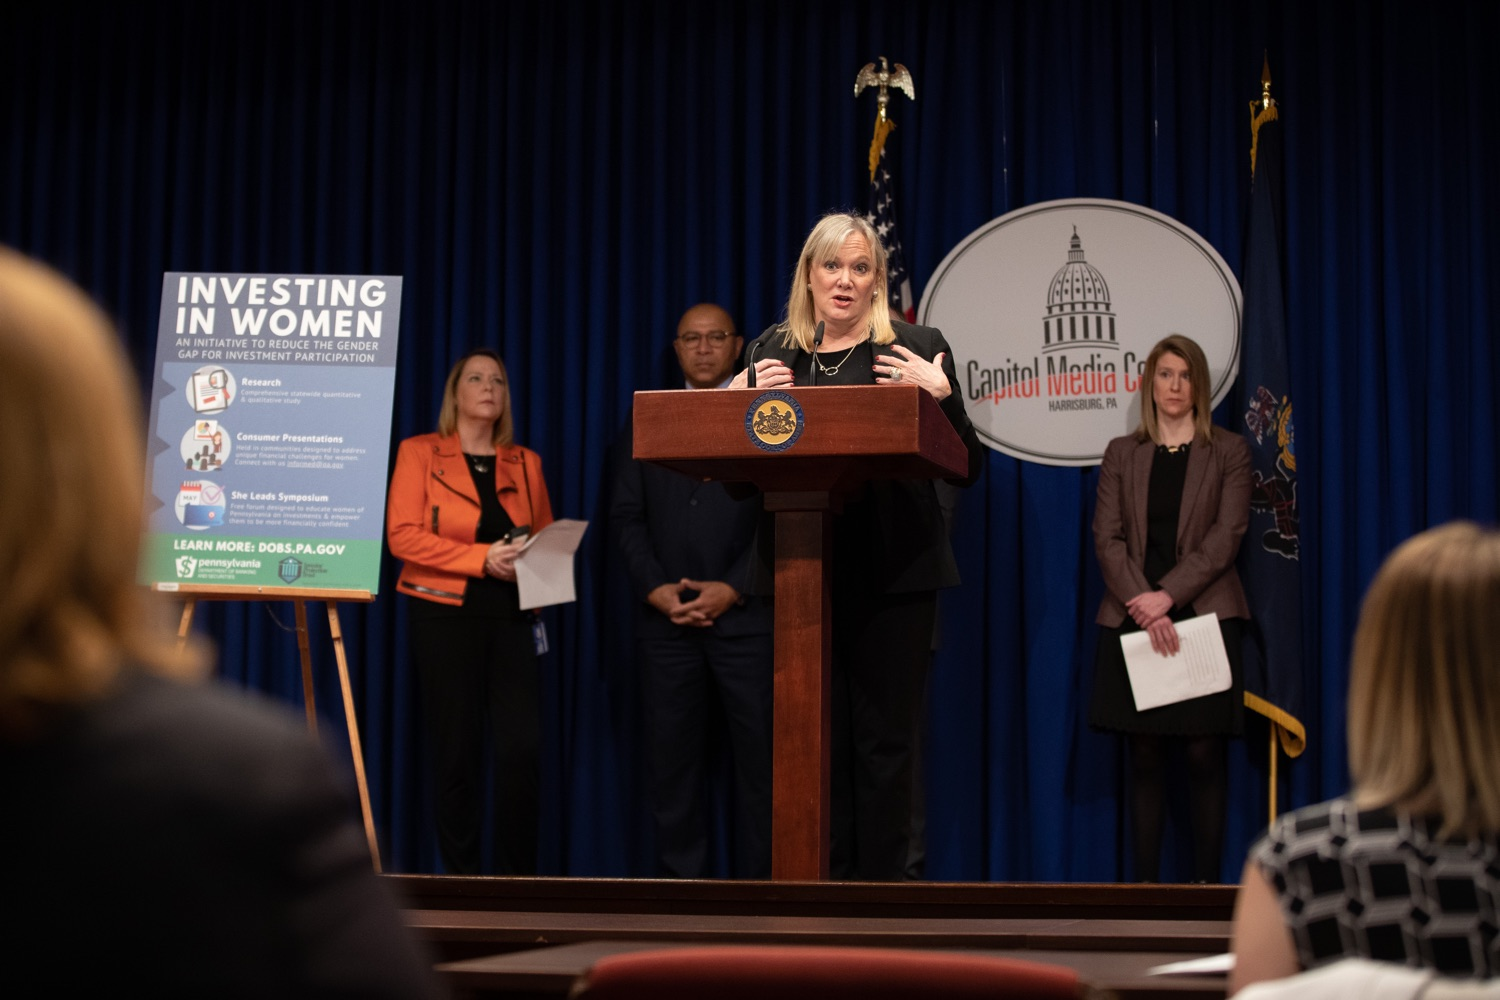 "<a href=""https://filesource.wostreaming.net/commonwealthofpa/photo/17725_dobs_investingwomen_dz_006.jpg"" target=""_blank"">⇣ Download Photo<br></a>Department of Banking and Securities Secretary Robin L. Wiessmann speaking at the announcement in the Capitol Media Center. Pennsylvania Department of Banking and Securities Secretary Robin L. Wiessmann today announced Investing in Women, an initiative aimed at providing women with important information about banking, credit, saving and investing, while offering practical resources to navigate their finances. The secretary was joined at a Capitol news conference by .Julie Bancroft, Chief Public Affairs Officer of the Pennsylvania Coalition Against Domestic Violence (PCADV).  .Harrisburg, PA - January 15, 2020."